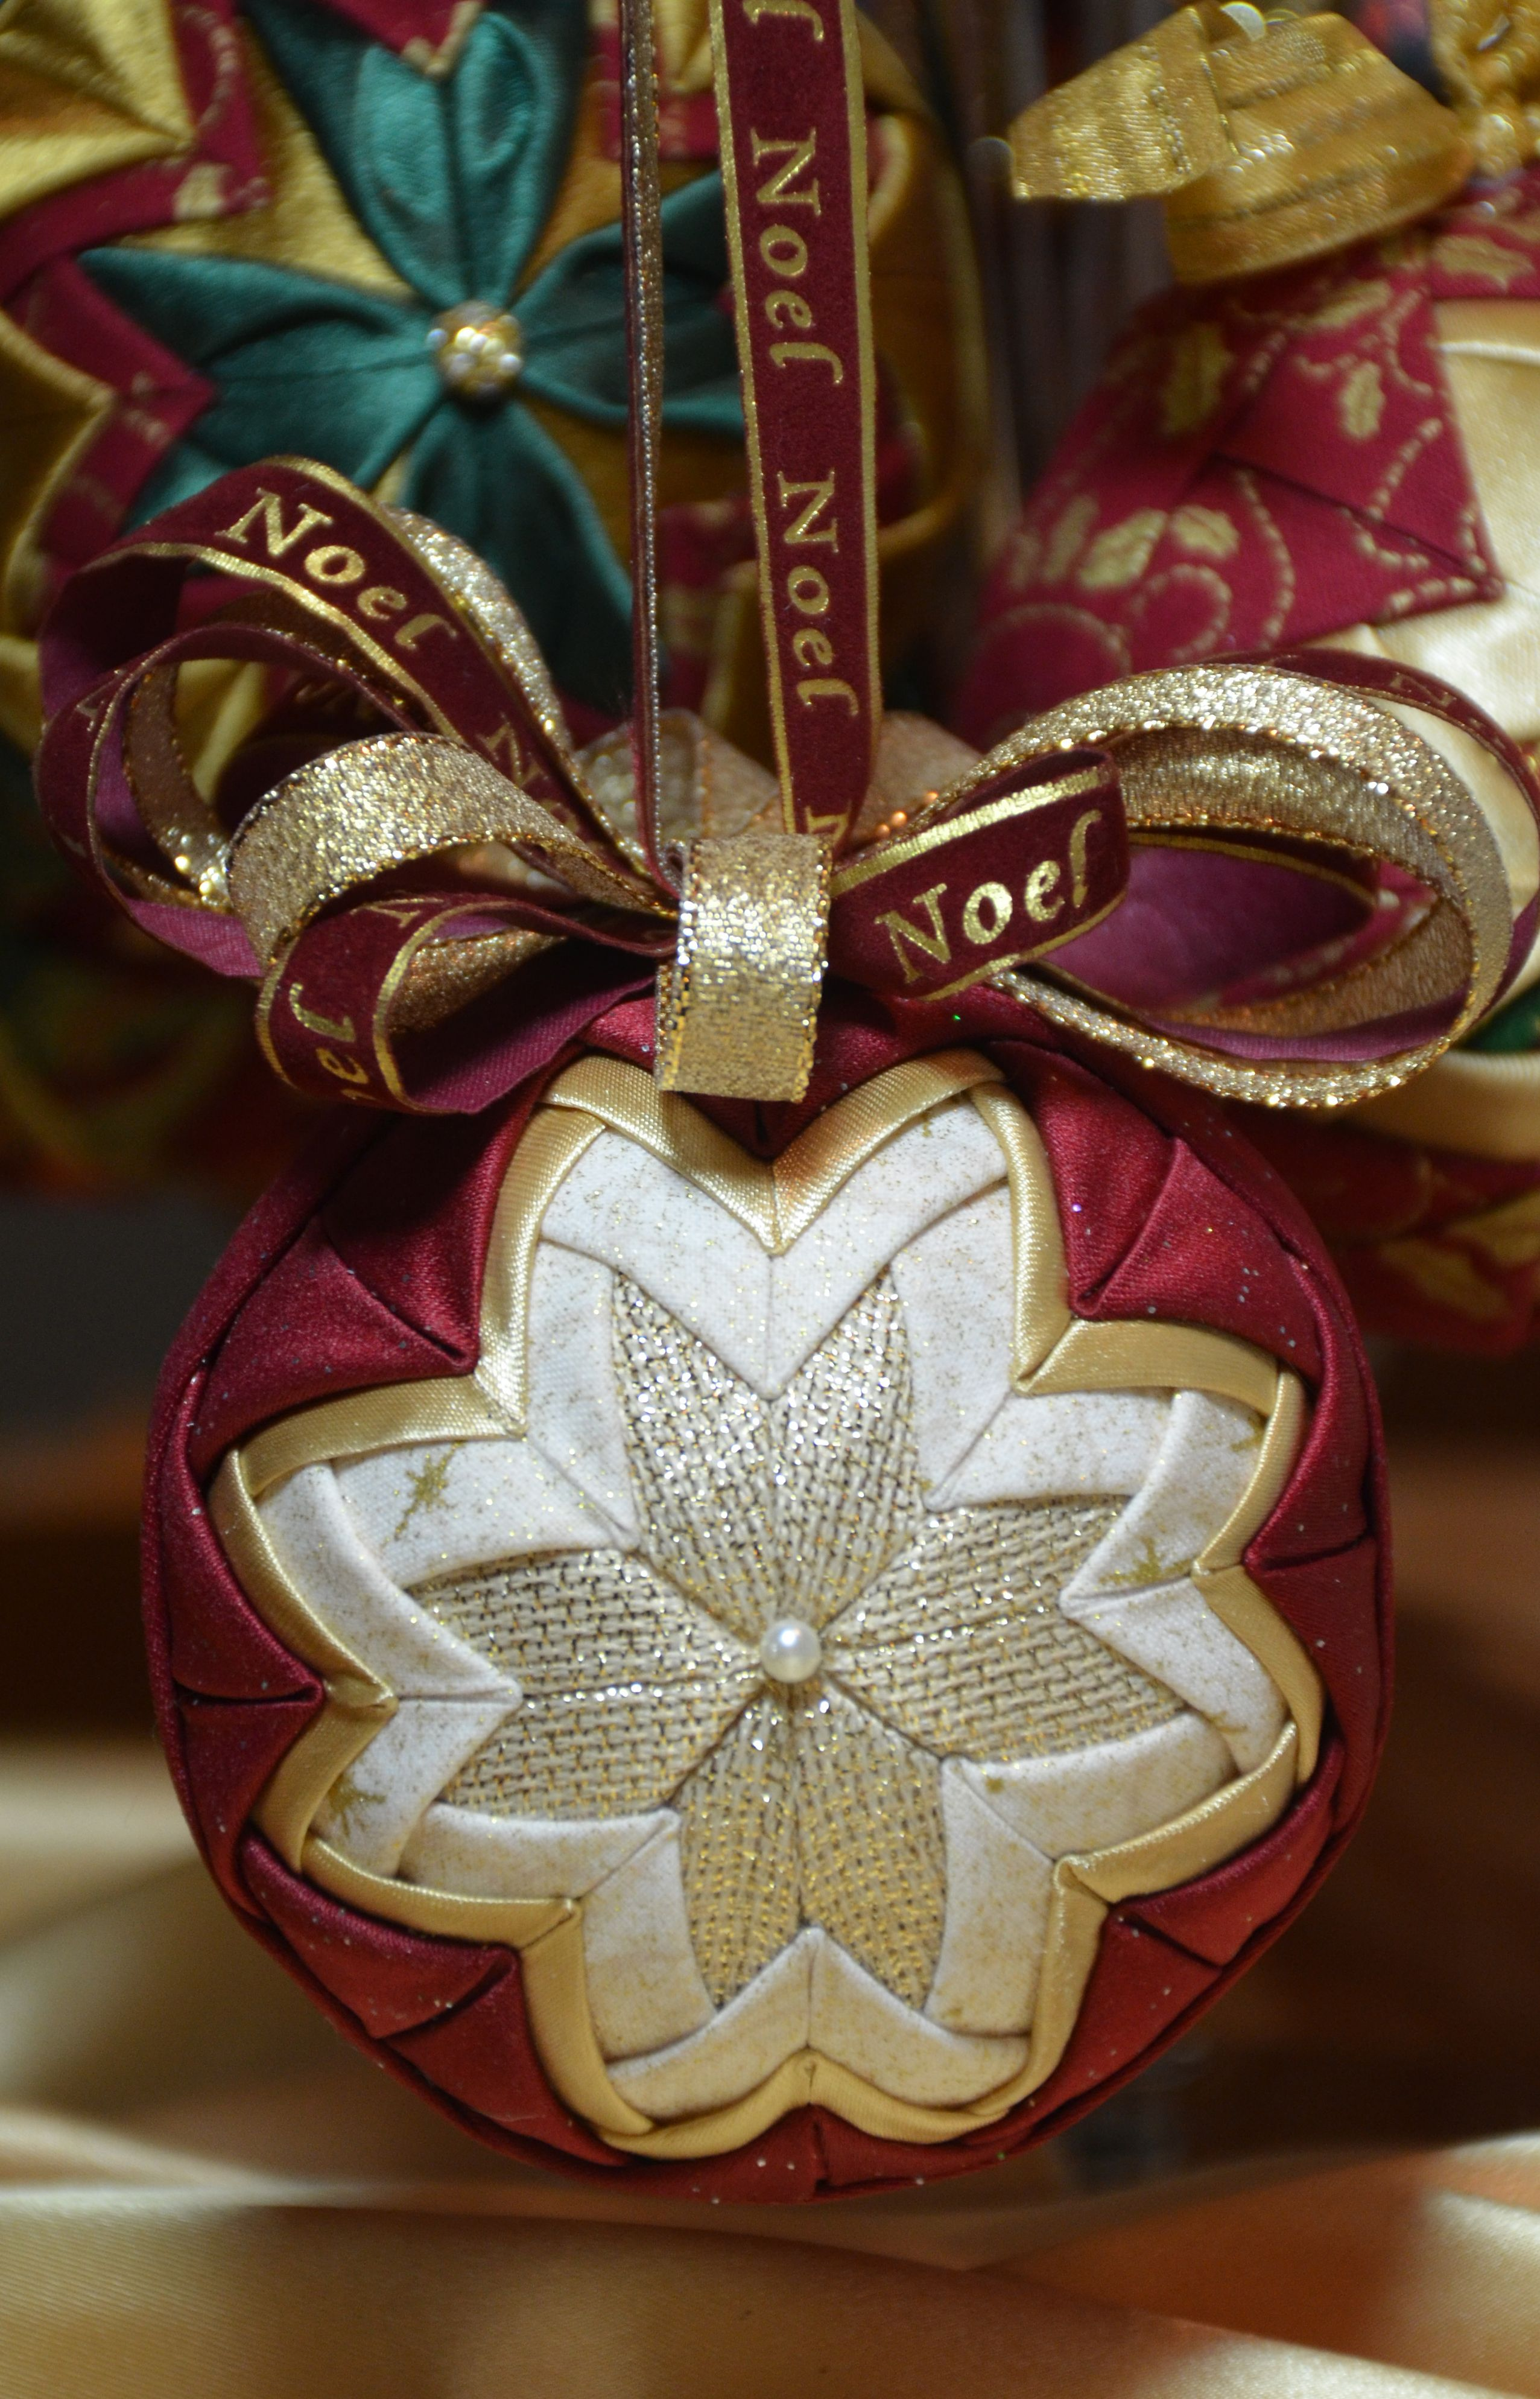 No sew quilted ornament | My Quilted Ornaments | Pinterest ...